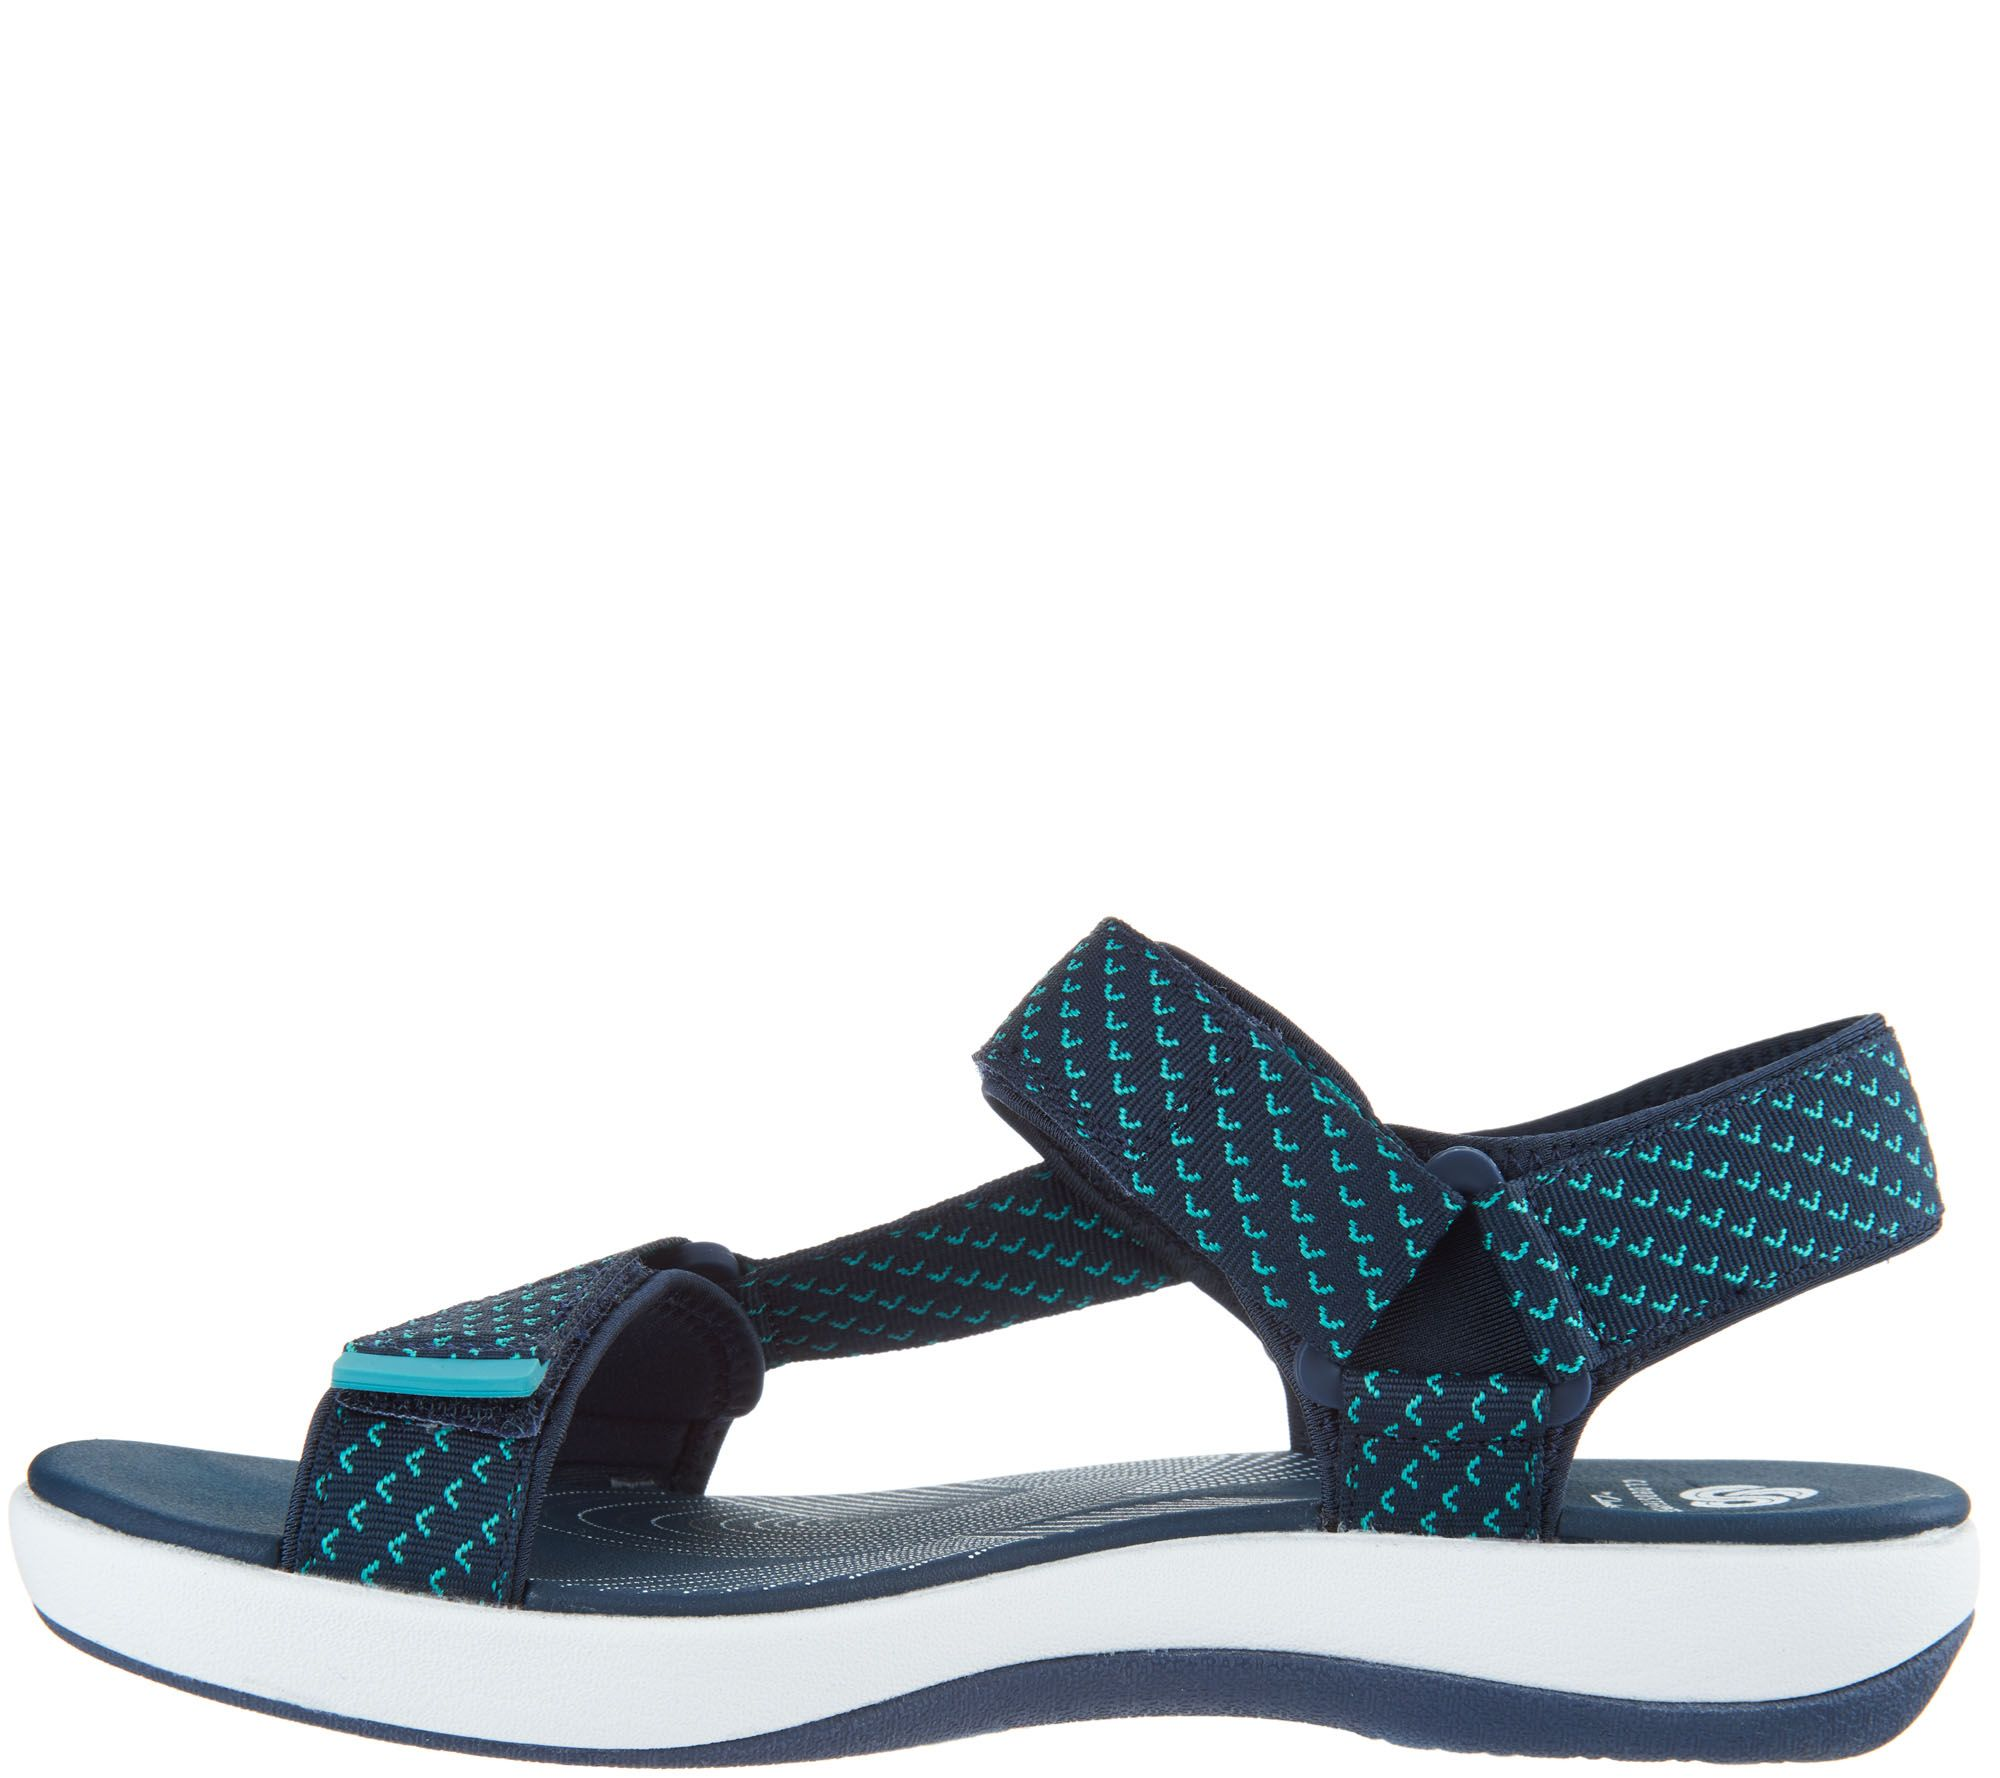 0cb7a3269124cd CLOUDSTEPPERS by Clarks Adjustable Sport Sandals - Brizo Cady - Page 1 —  QVC.com